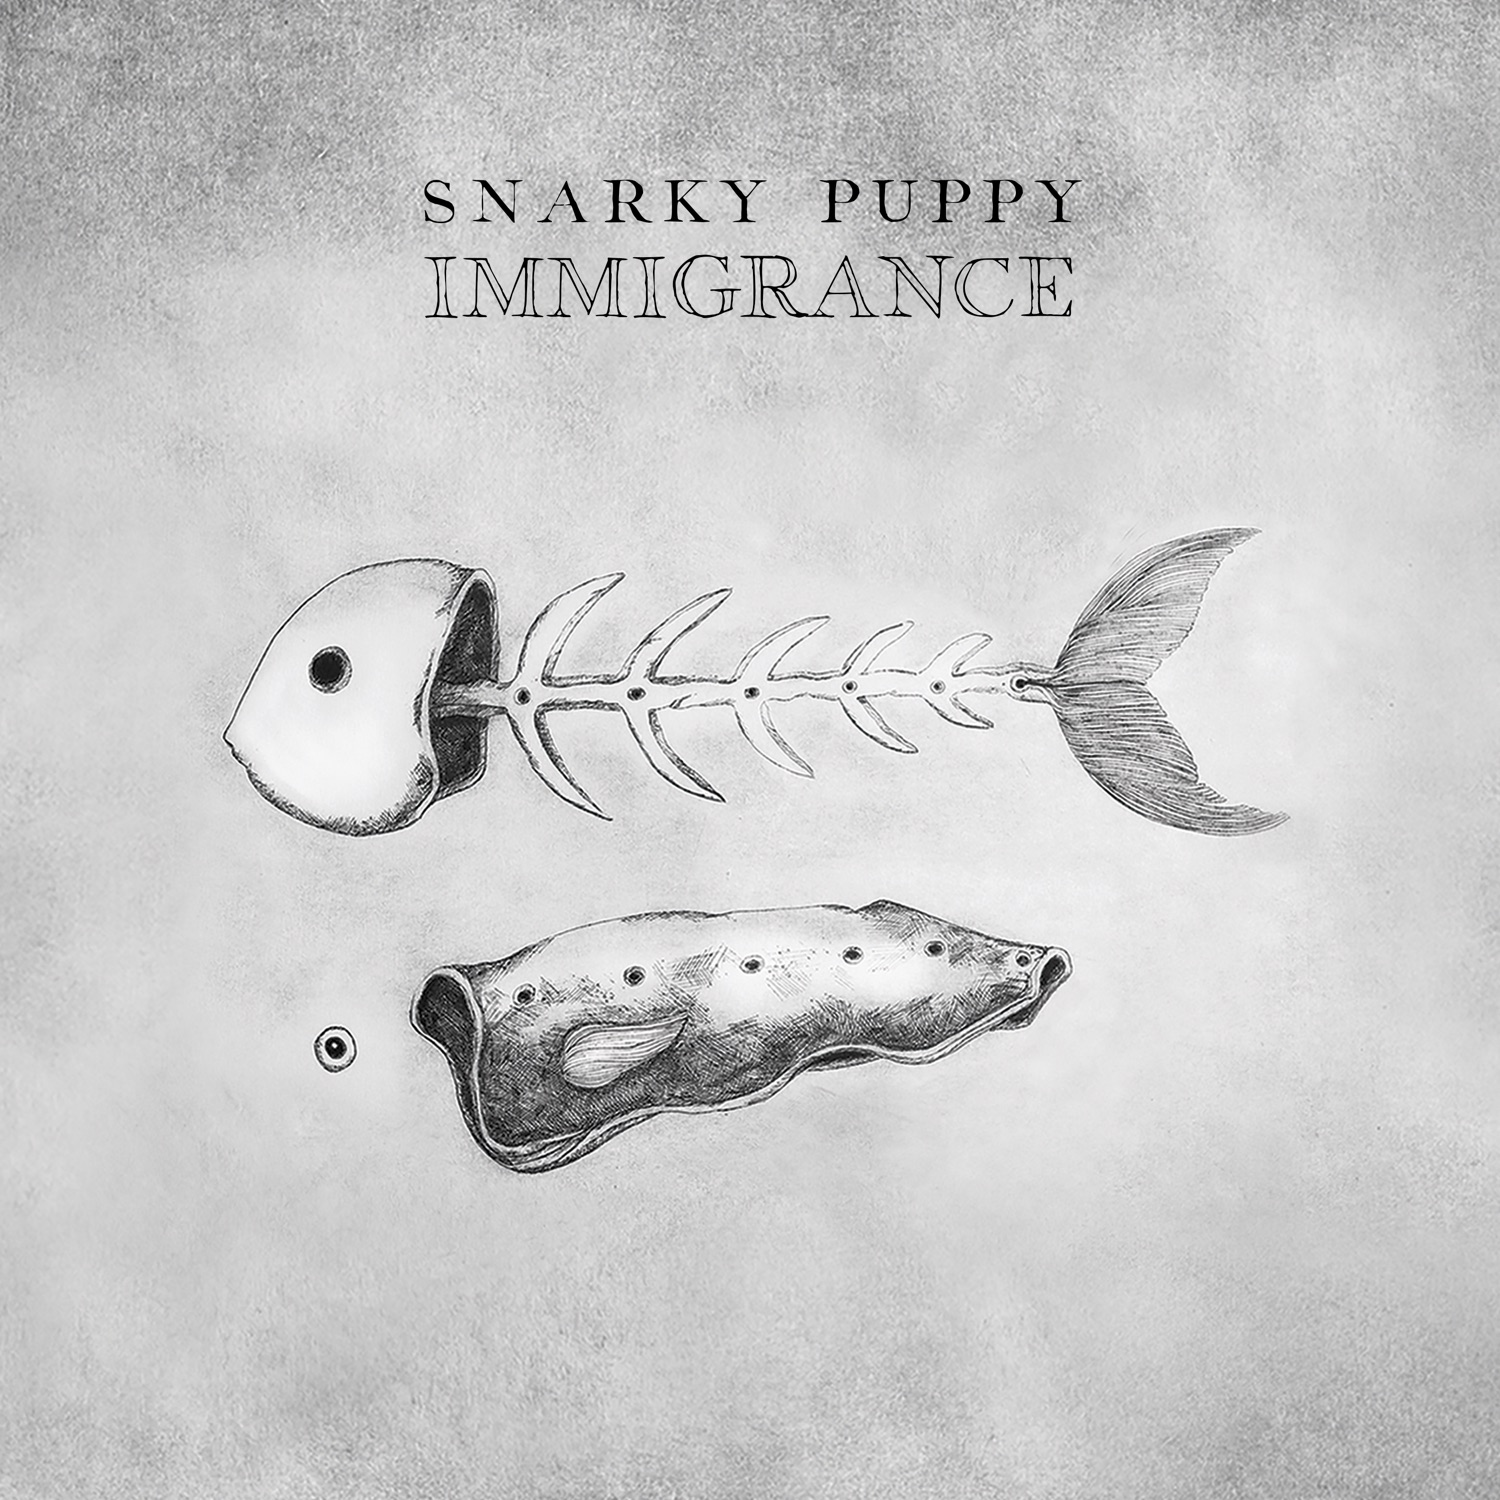 Cover art for Snarky Puppy's release 'Immigrance'